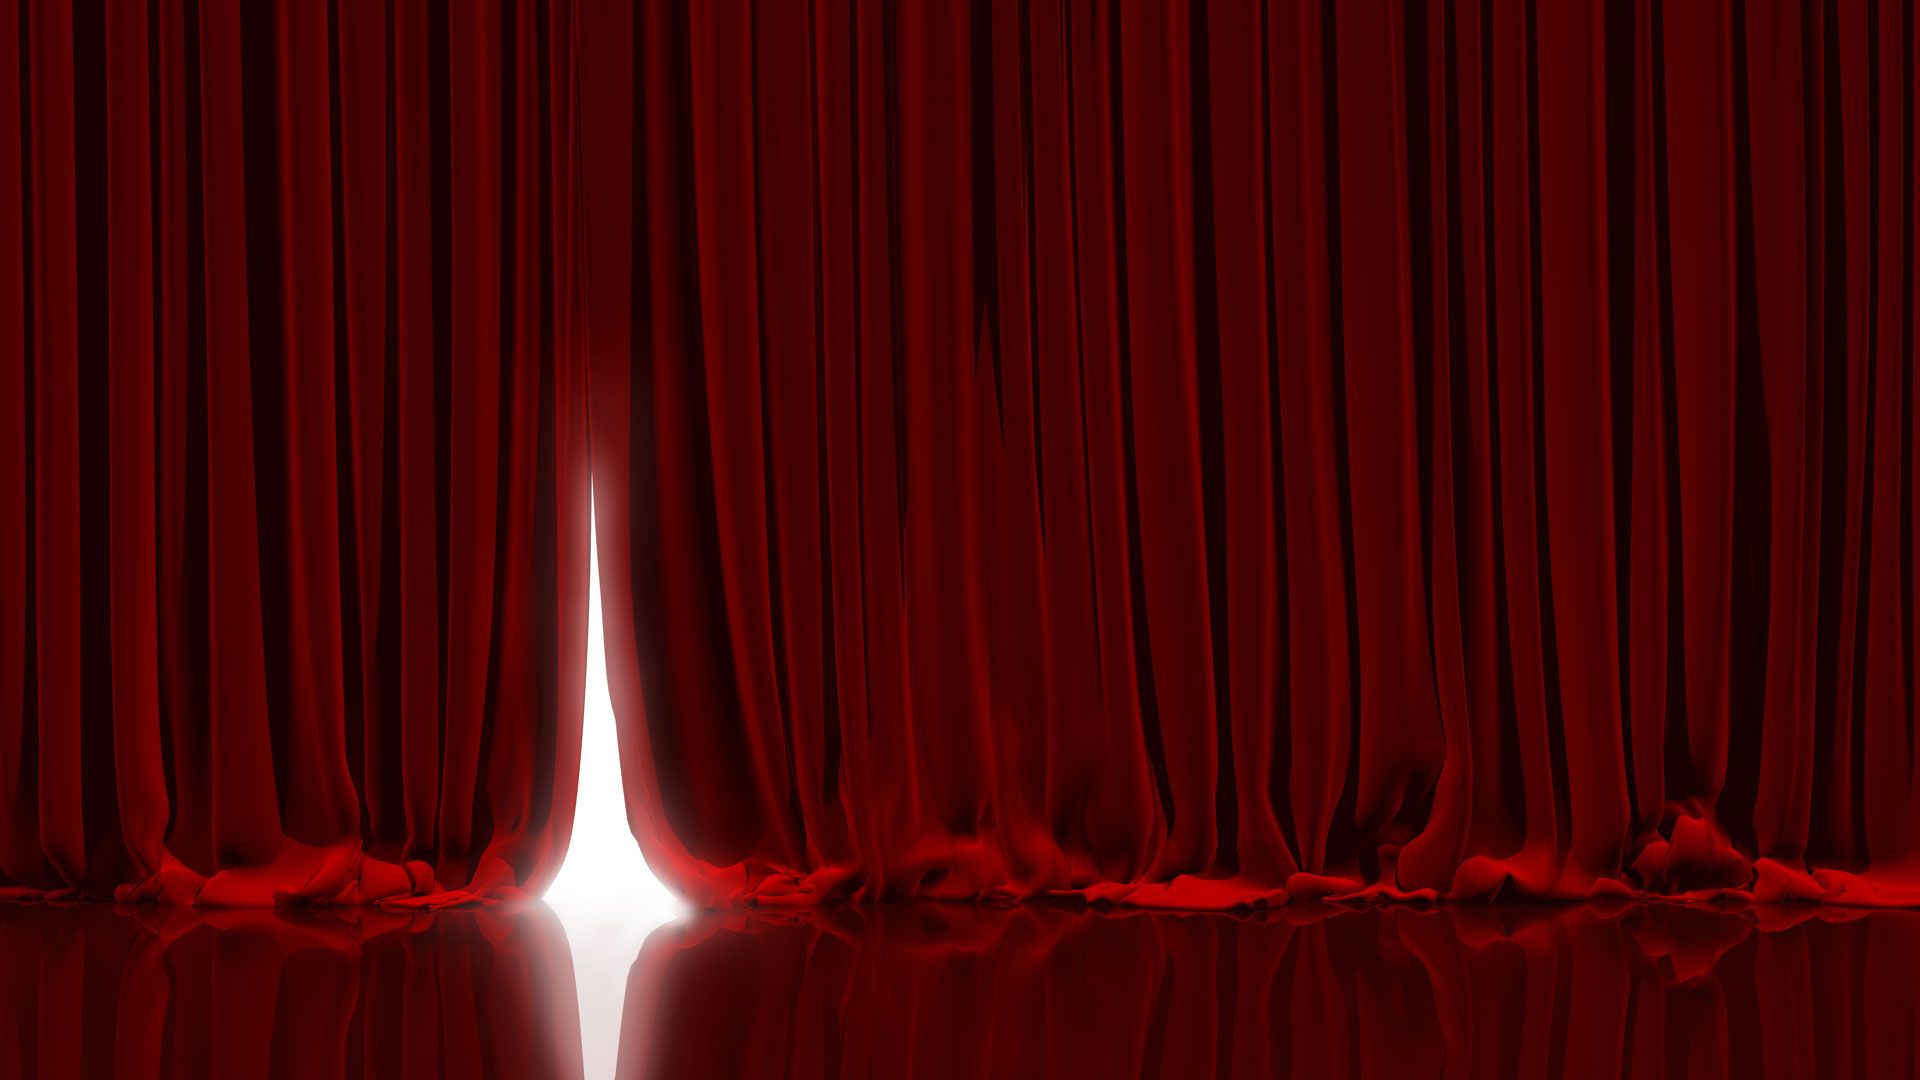 red stage curtain opening